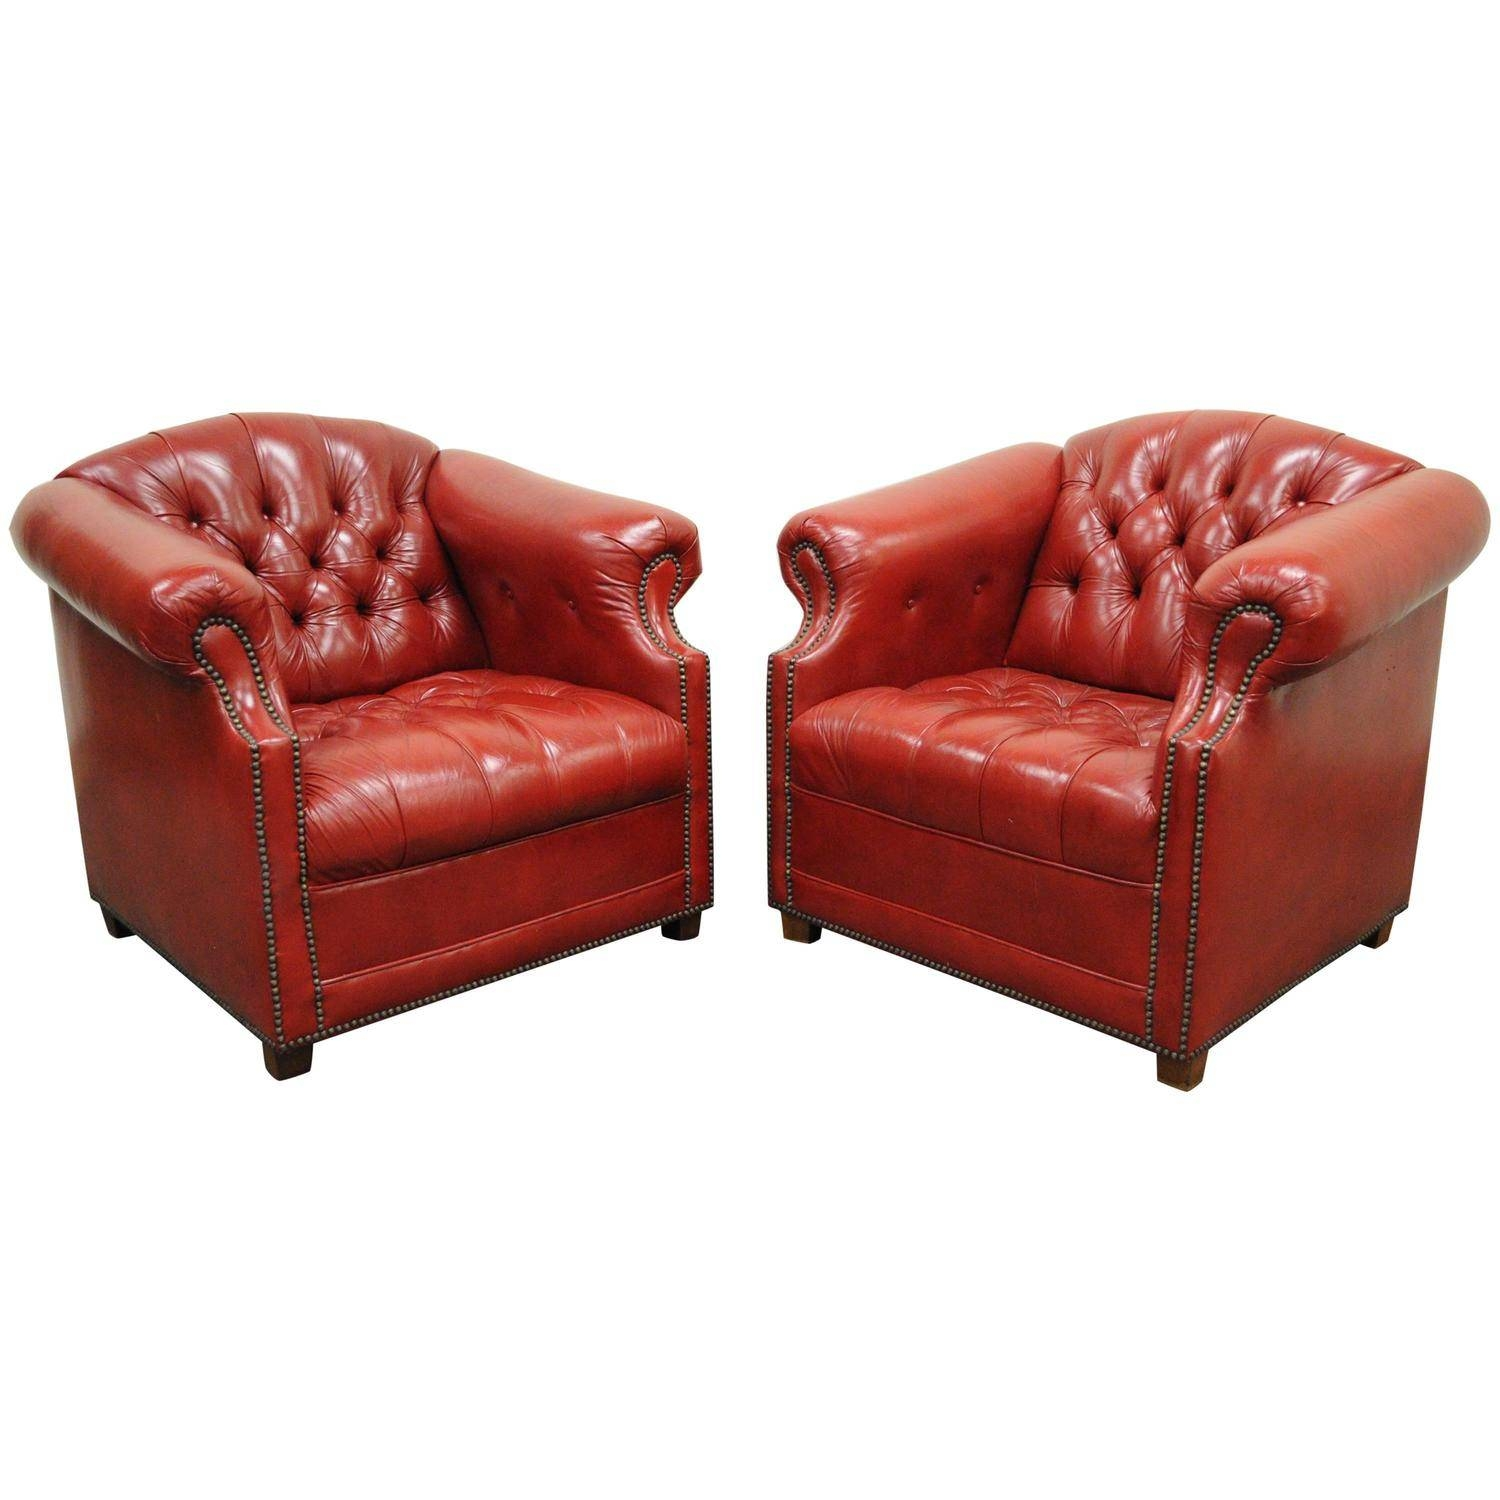 Pair Of Vintage Leather Chesterfield Chairs, England, Circa 1920 with regard to Red Chesterfield Chairs (Image 9 of 15)